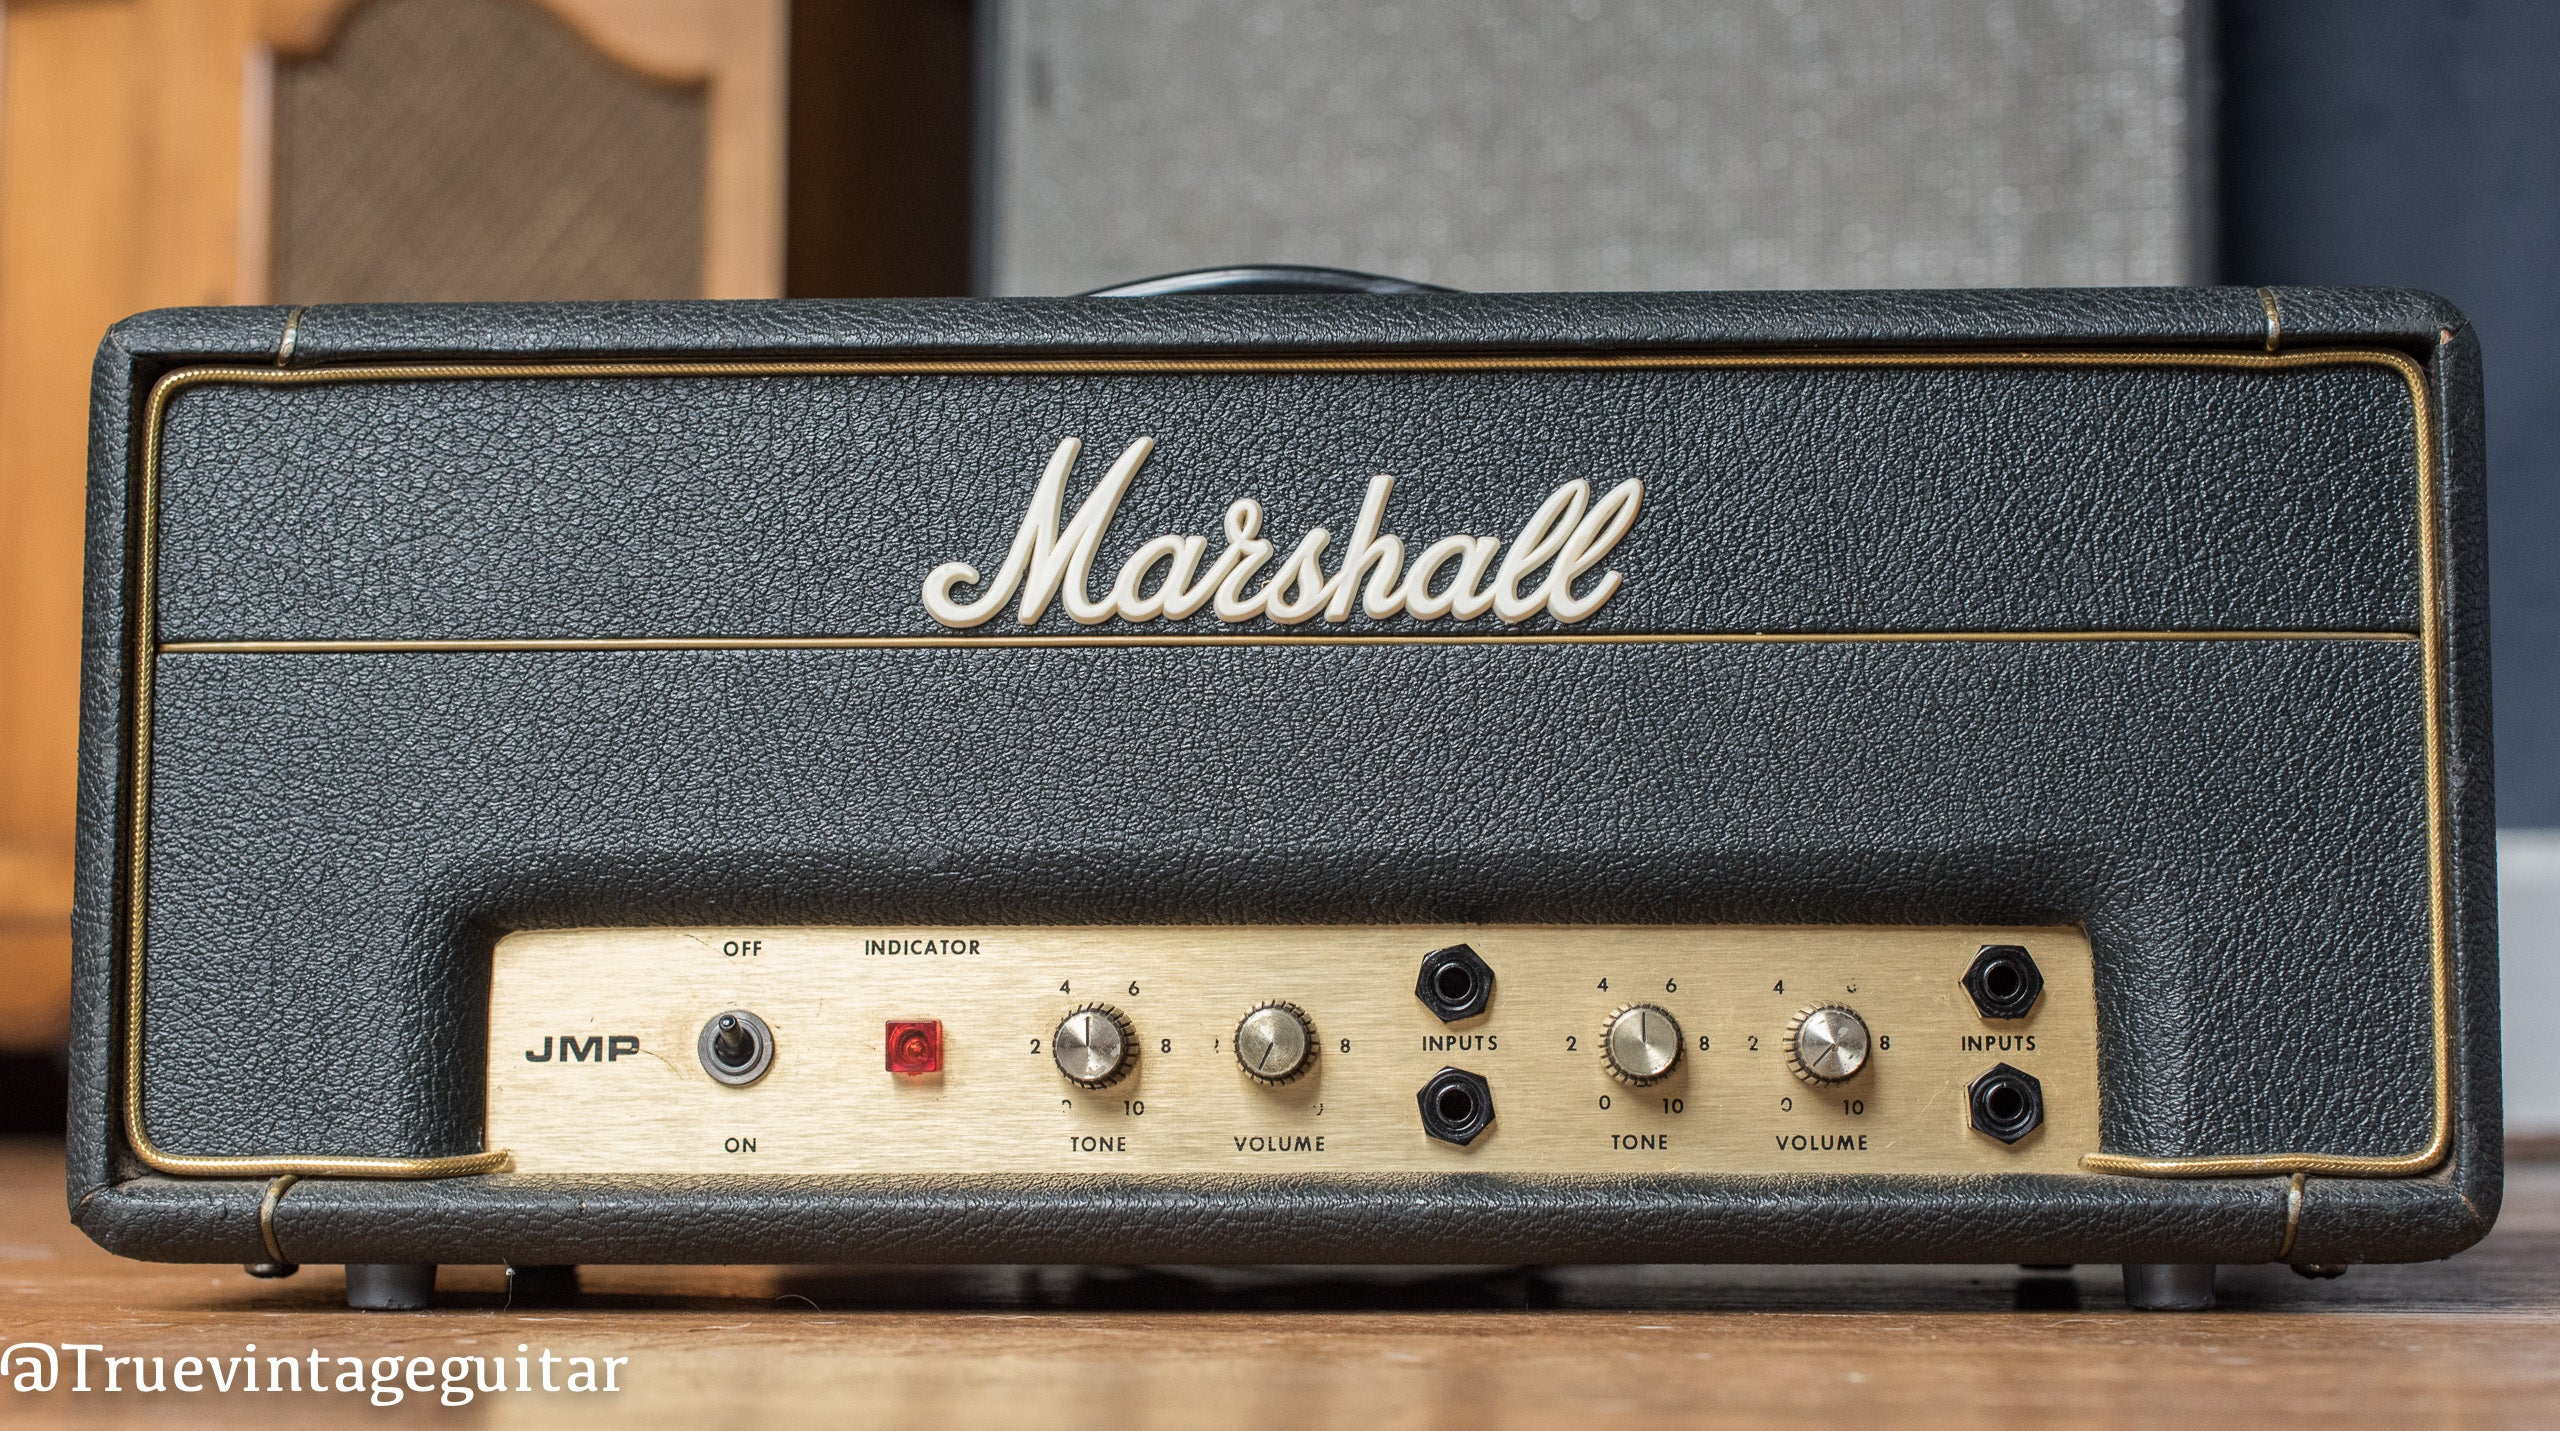 1972 Marshall Lead-Bass 20 watt guitar amplifier